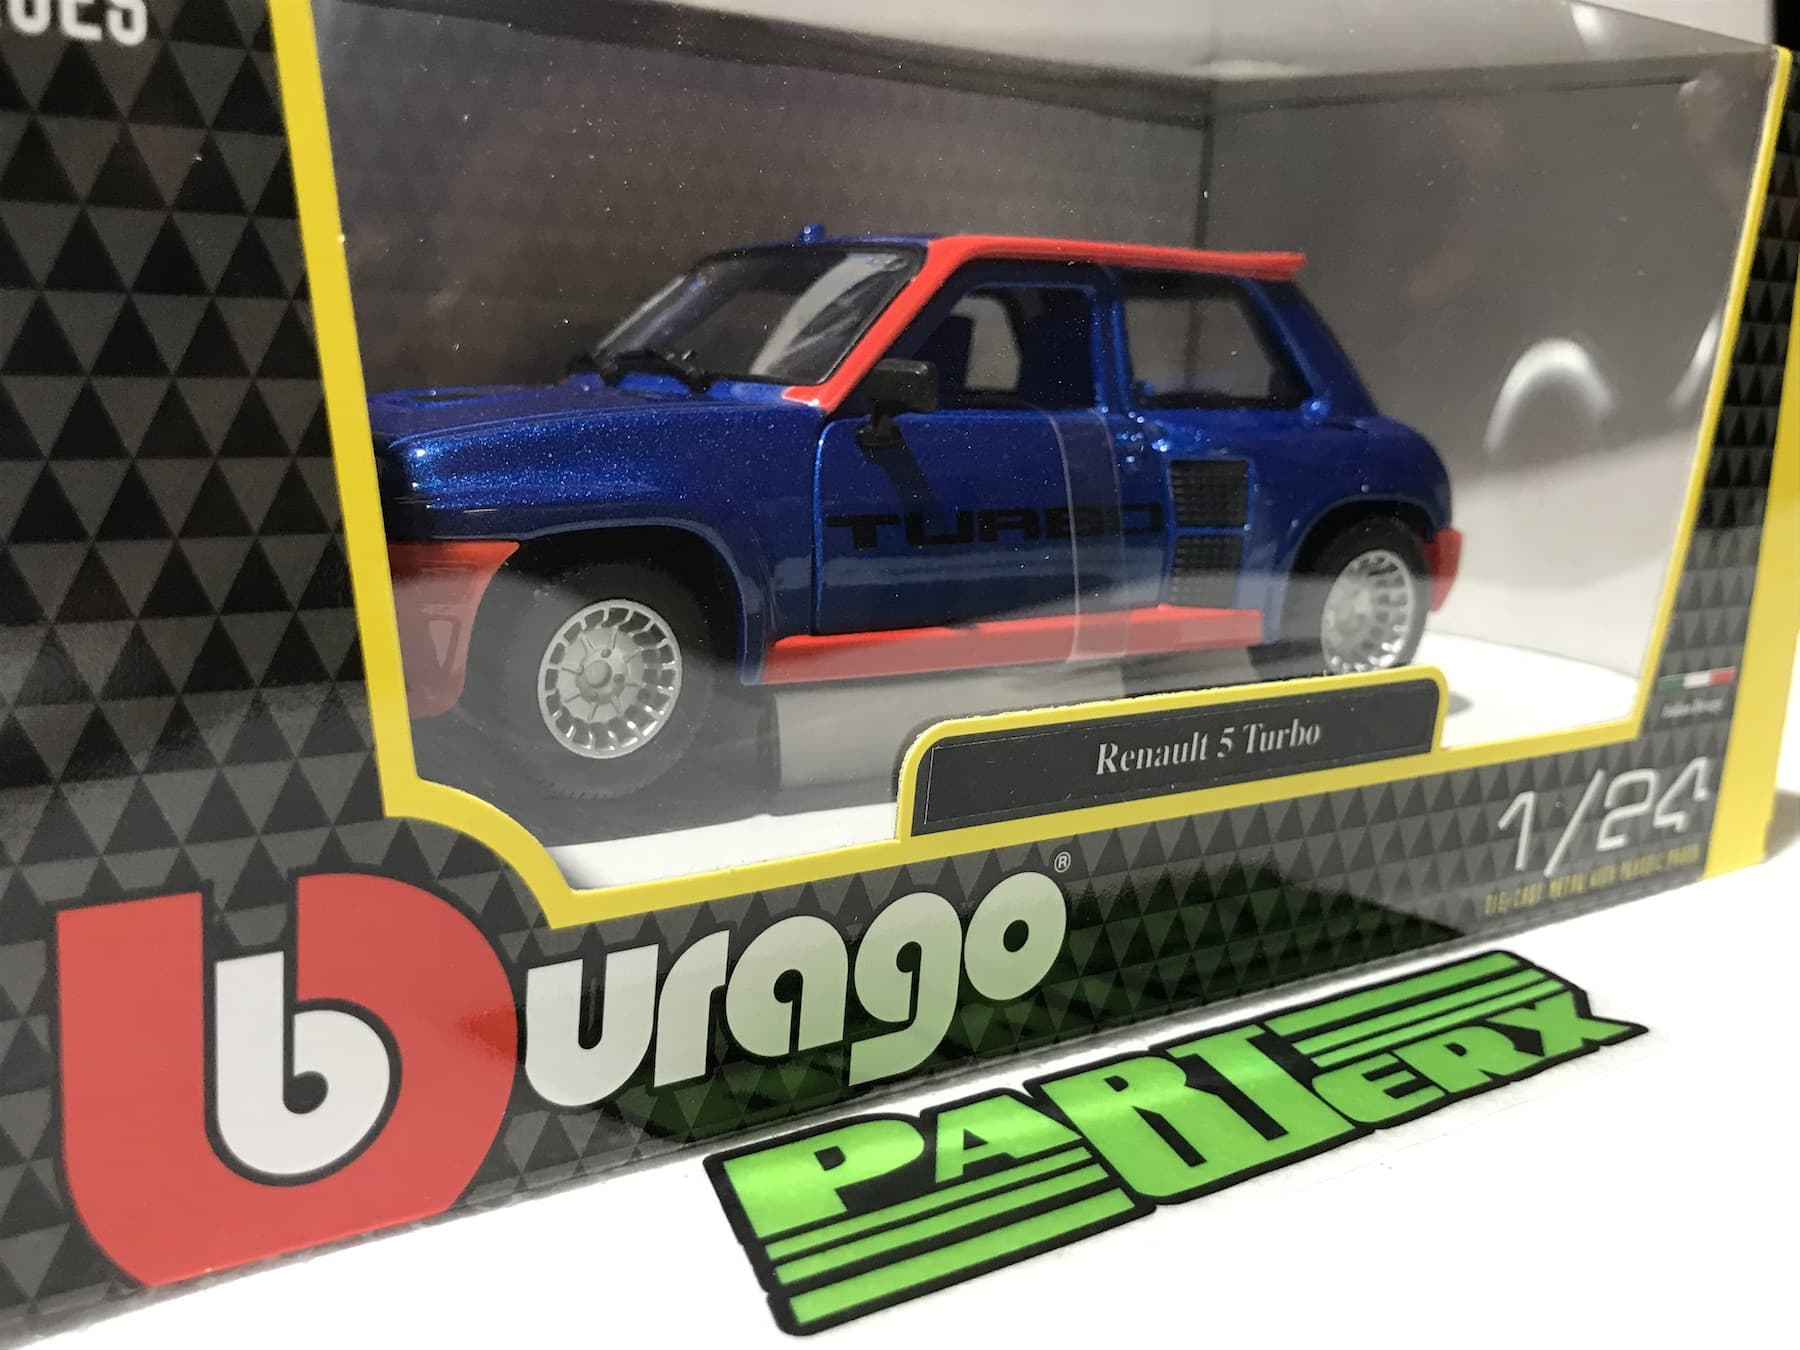 Renault 5 Turbo 1:24 Scale Model Toy Owners Collectors Enthusiasts Gift Birthday Present